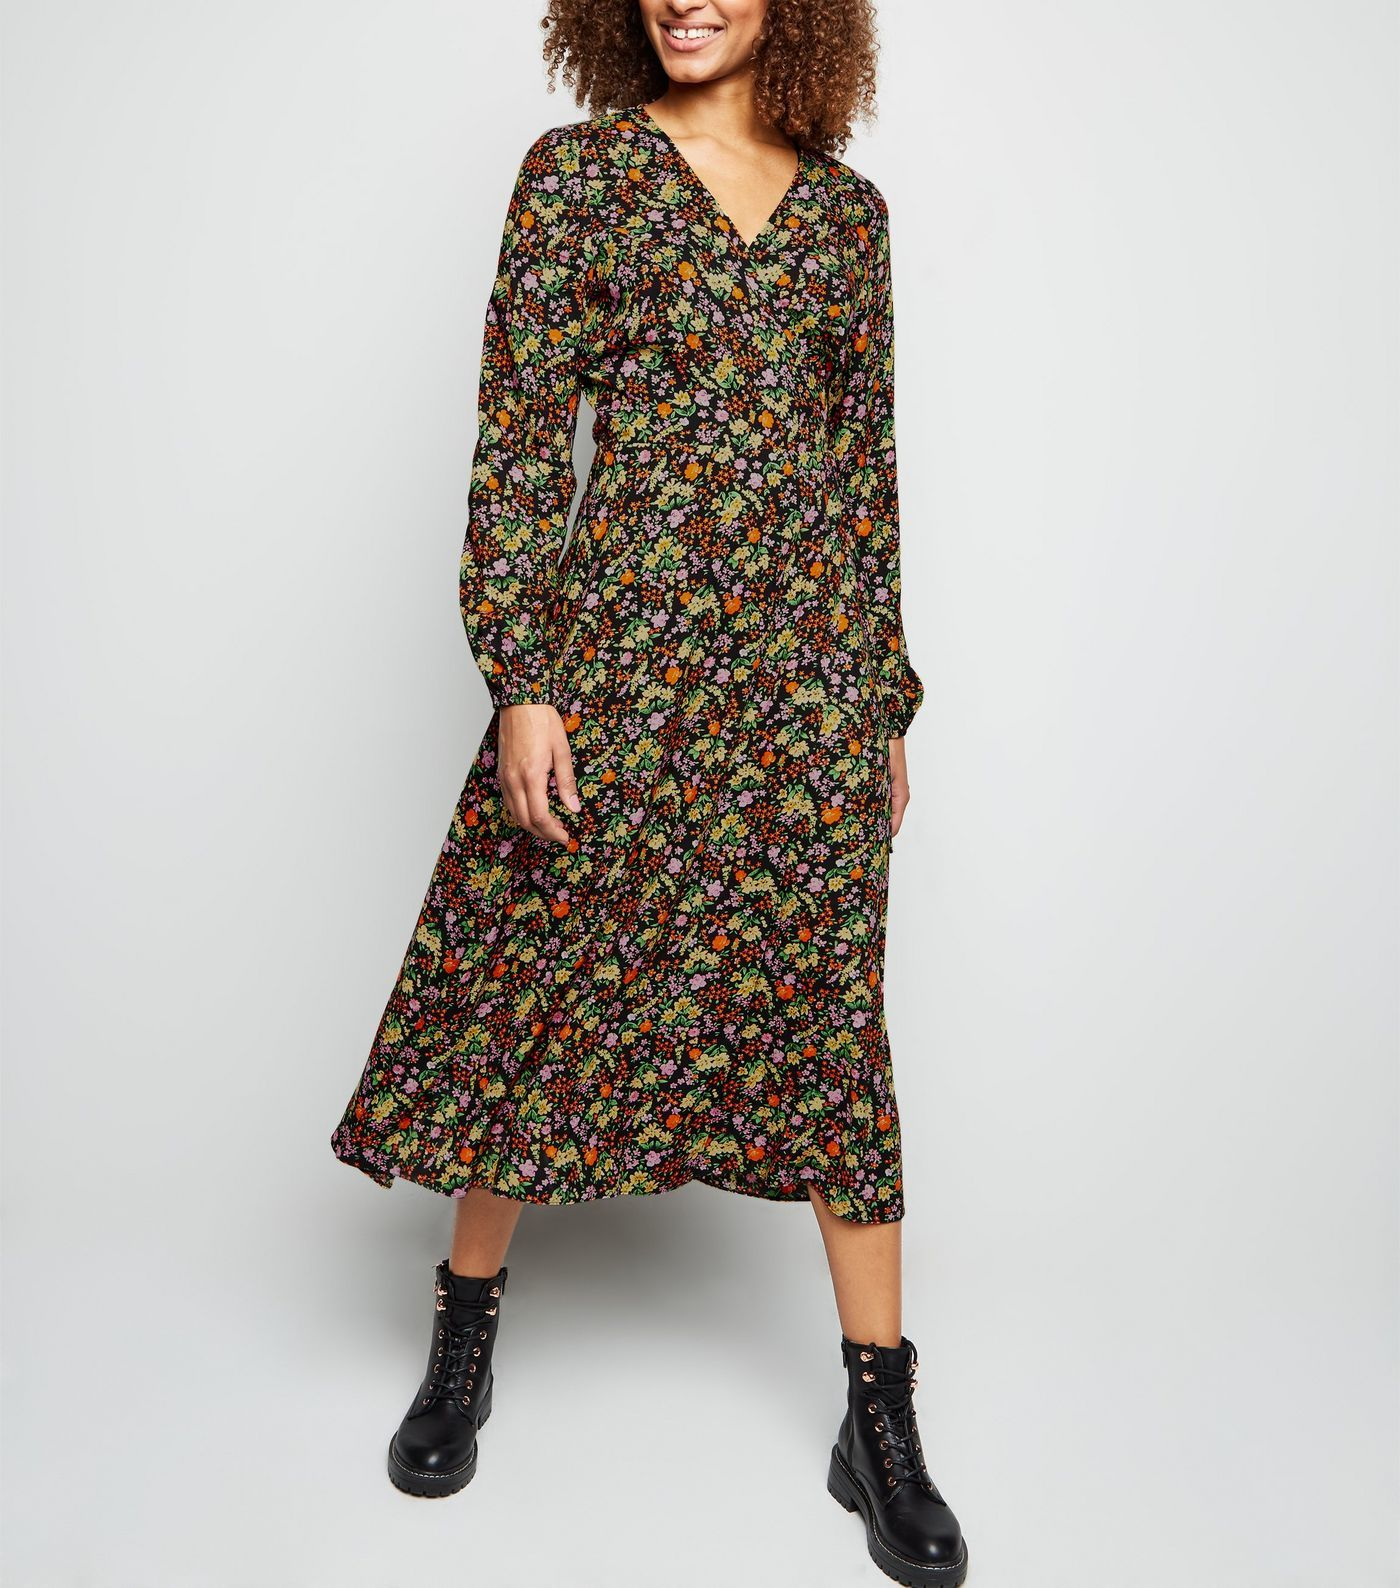 Tall Black Ditsy Floral Long Sleeve Button Midi Dress New Look Long Sleeve Floral Dress Floral Midi Dress Chiffon Midi Dress [ 1588 x 1400 Pixel ]